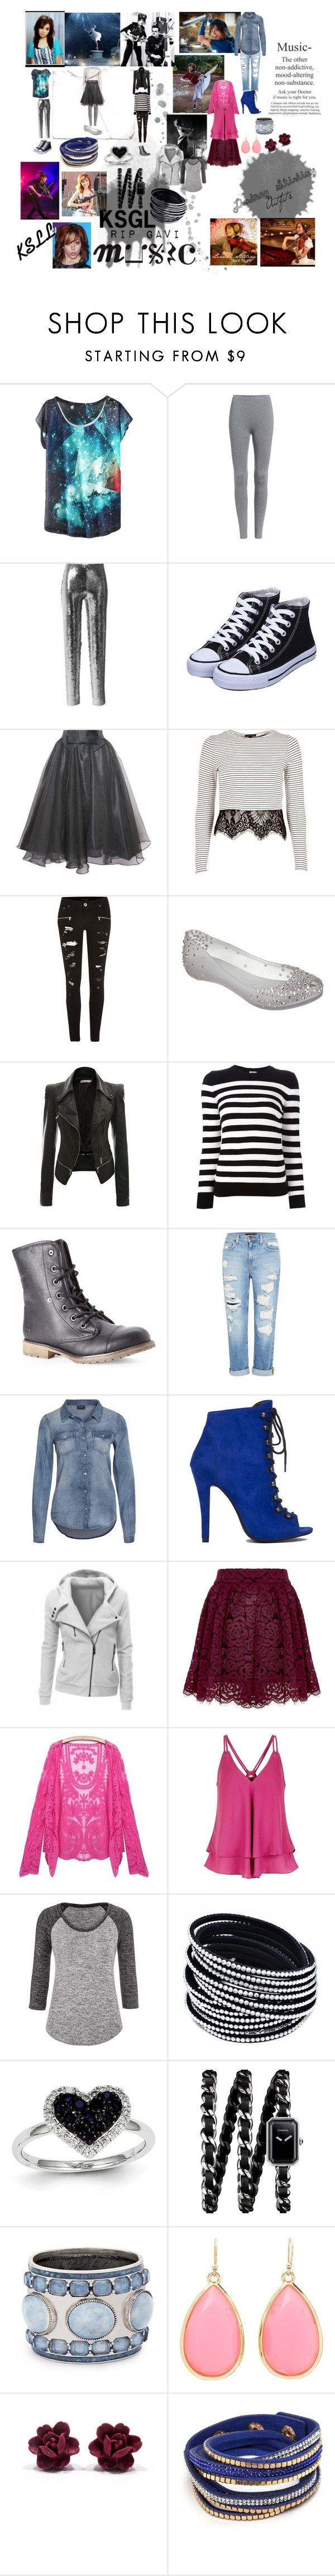 """Lindsey Stirling Outfits"" by phelba-hanna ❤ liked on Polyvore featuring Silent Night, Isabel Marant, Relaxfeel, River Island, Melissa, Yves Saint Laurent, Dirty Laundry, Genetic Denim, VILA and Akira Black Label"